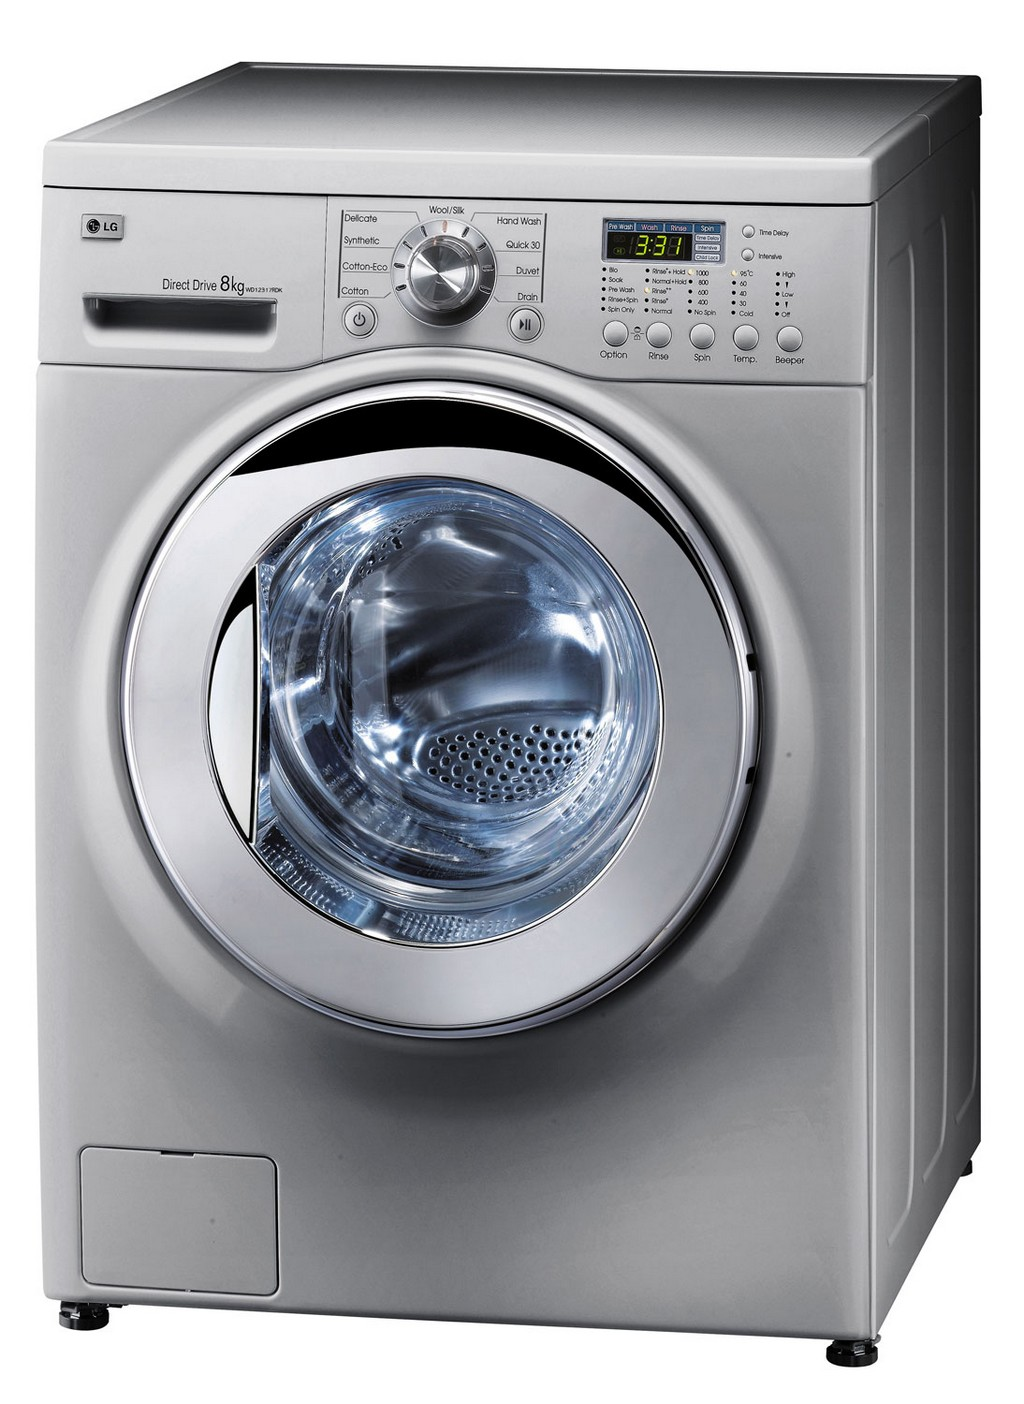 washing machine, top load washer, caravan washing machine